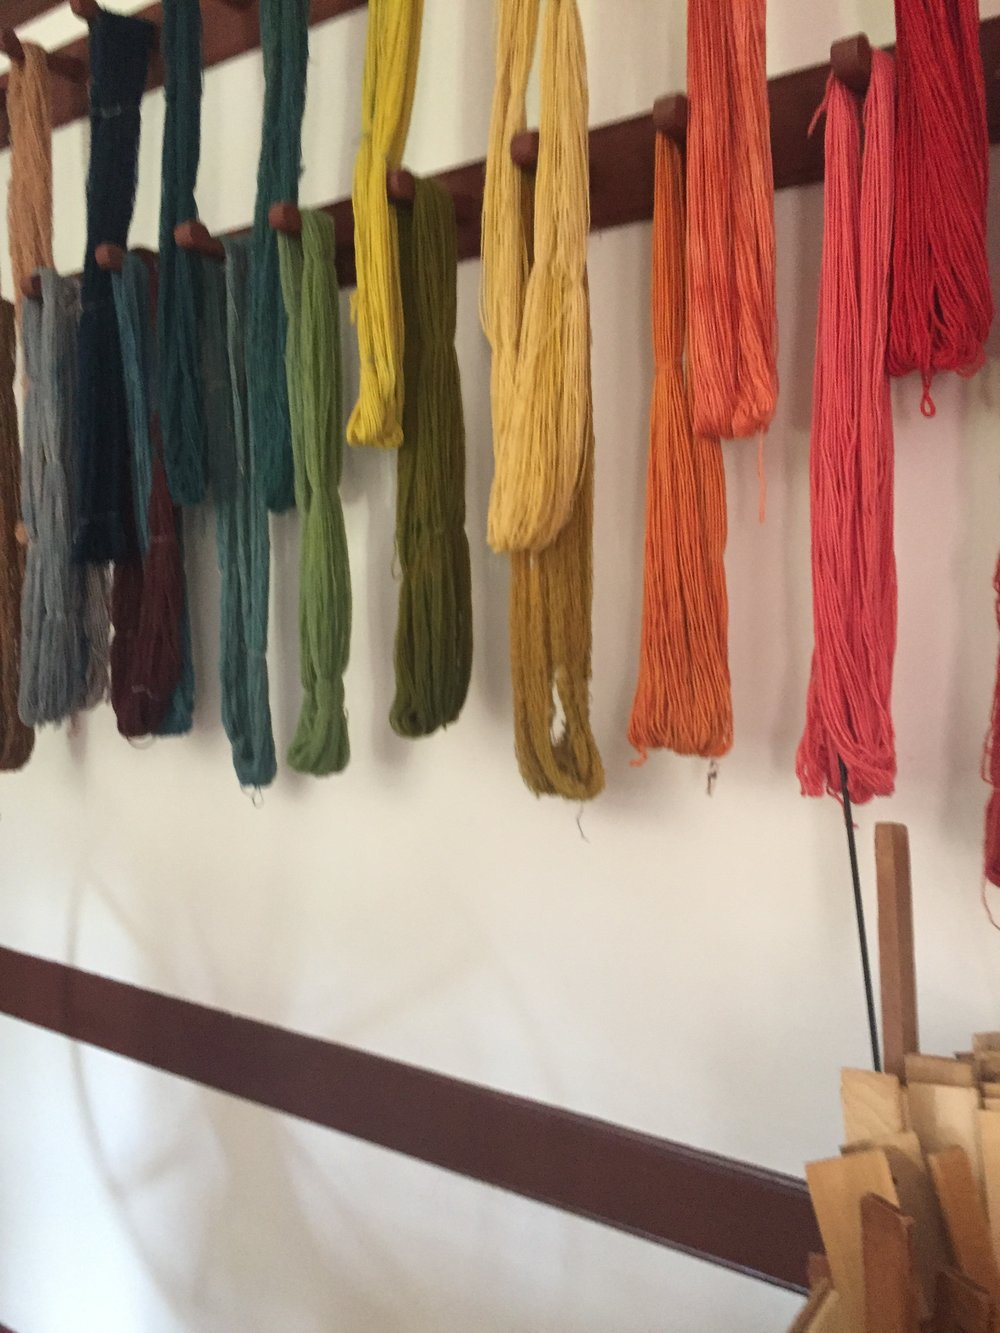 Recently dyed yarn in the weaver's shop